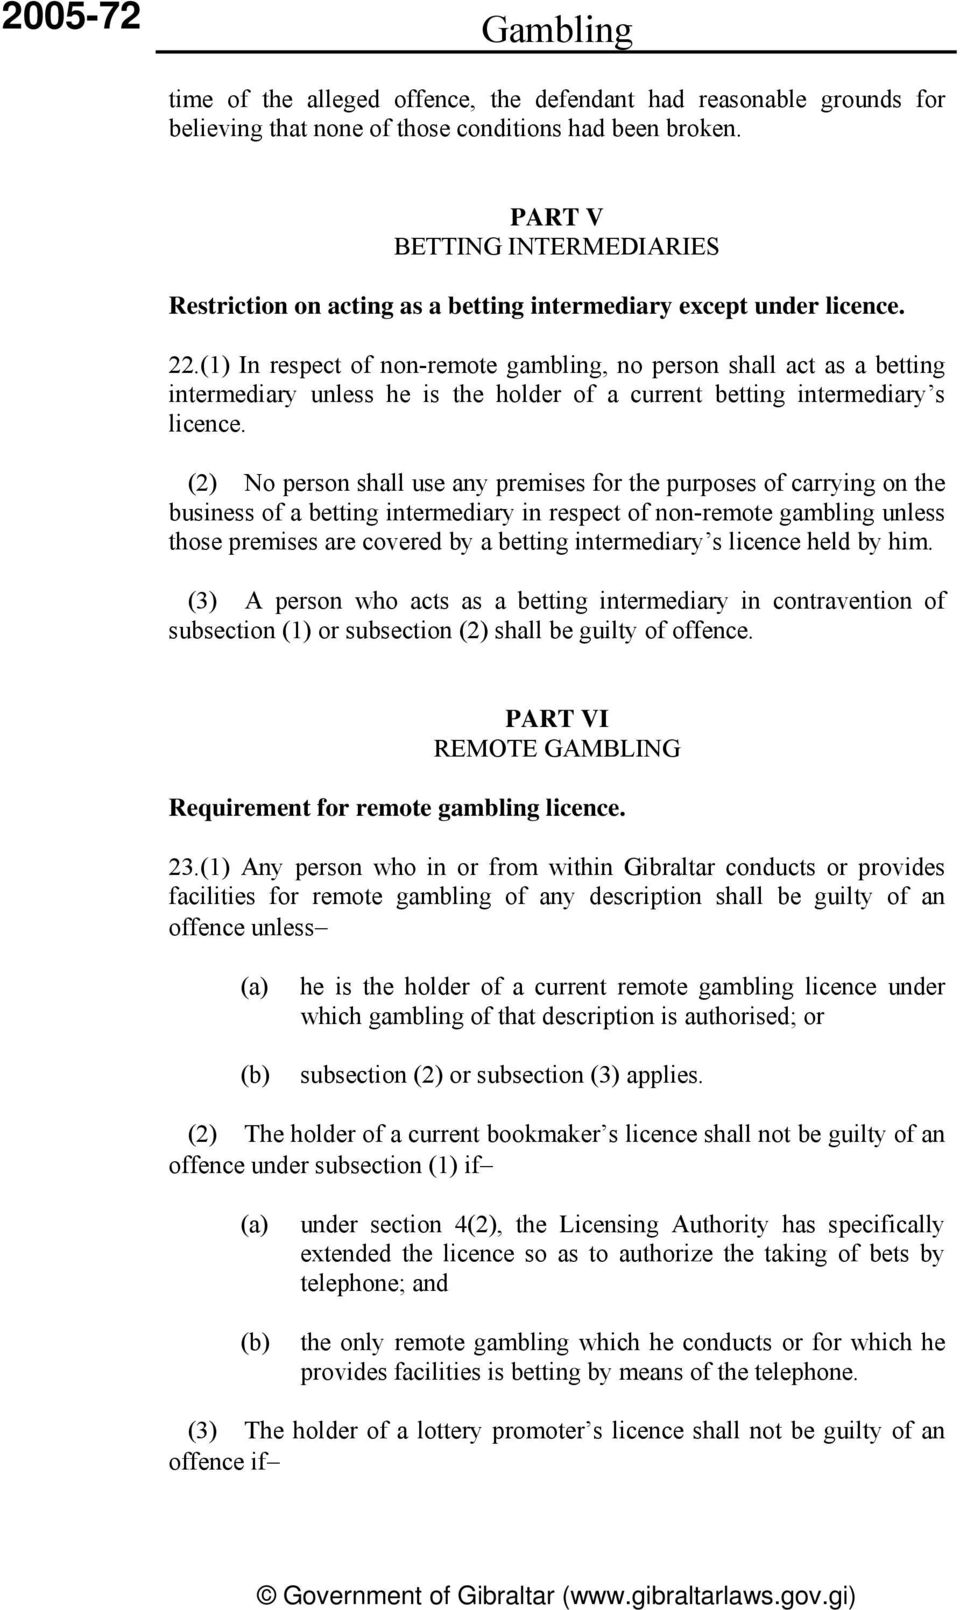 (1) In respect of non-remote gambling, no person shall act as a betting intermediary unless he is the holder of a current betting intermediary s licence.